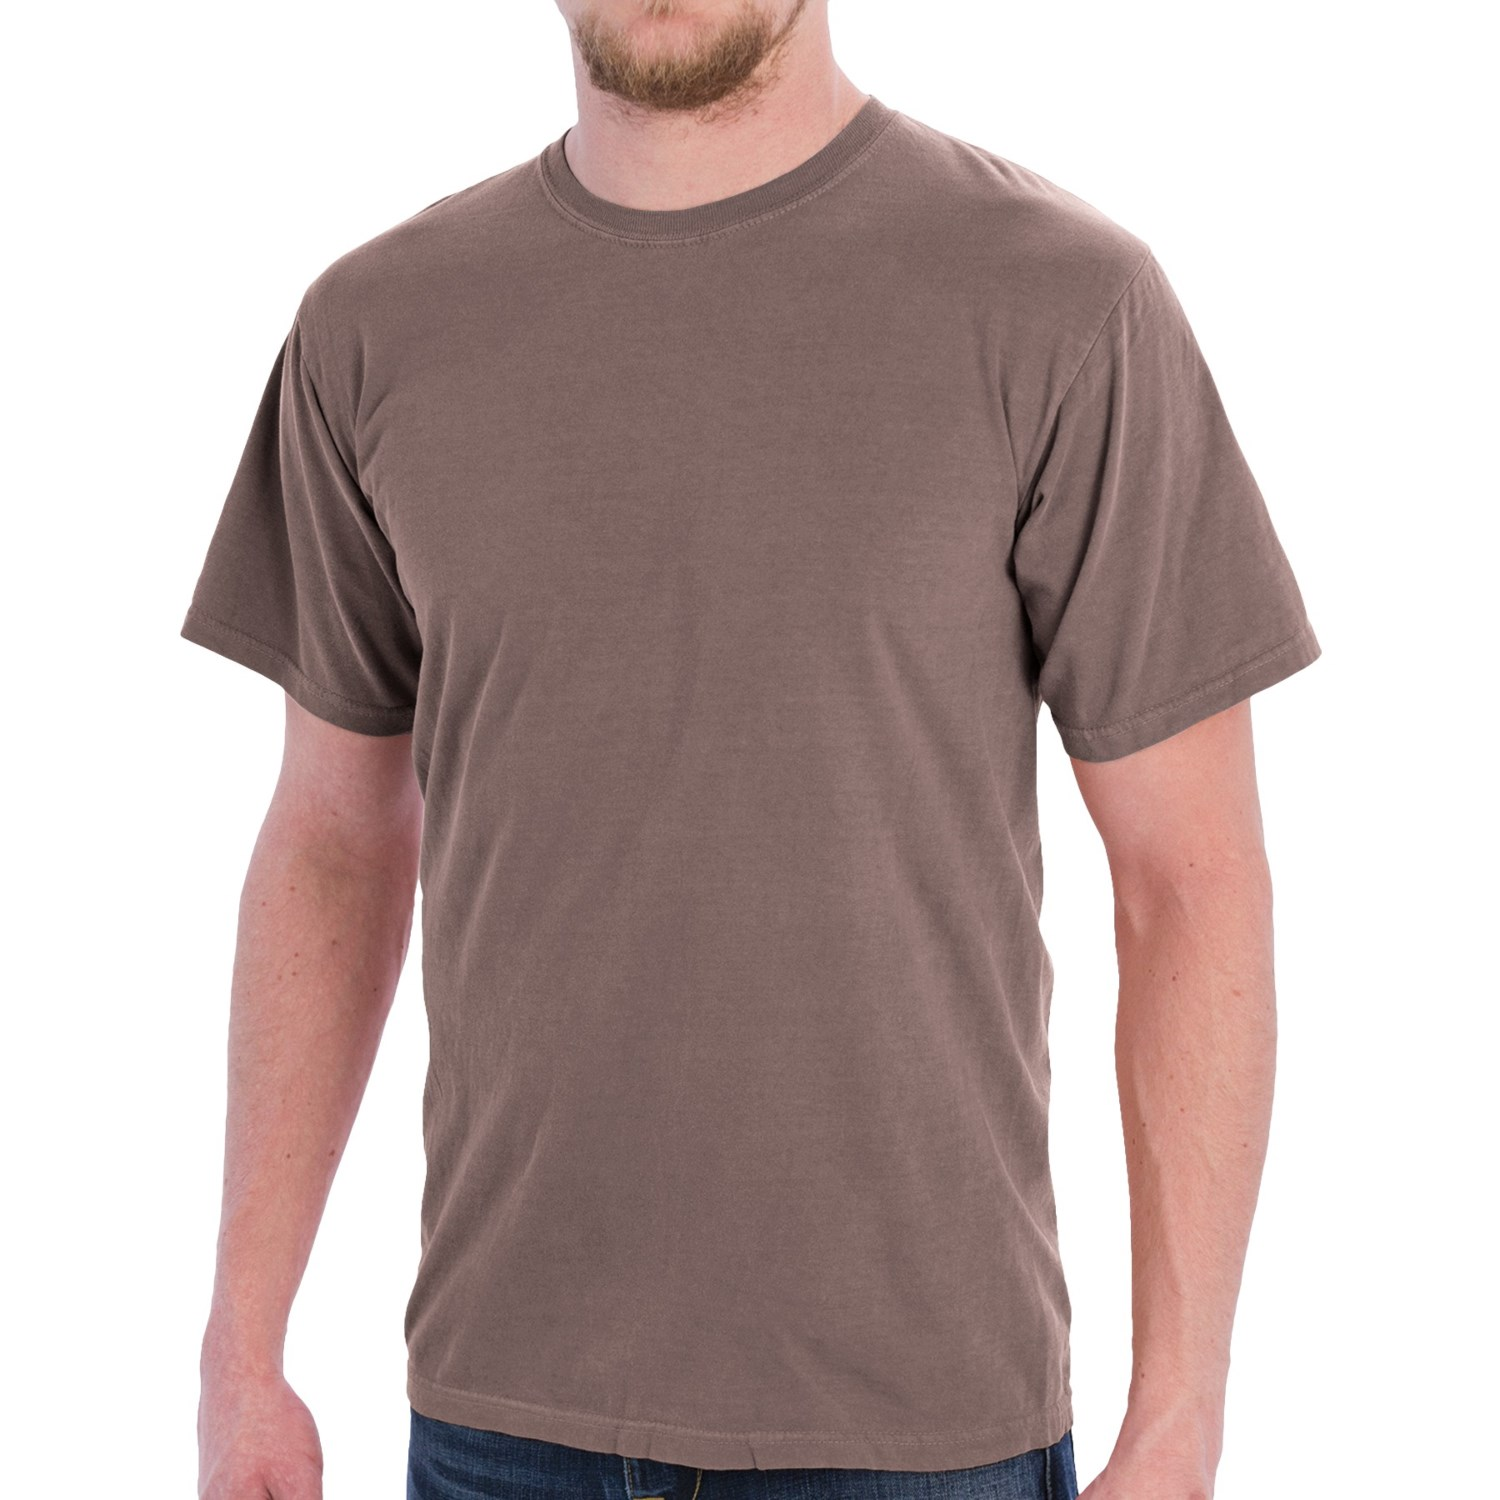 Port Company Pigment Dyed T Shirt For Men 9156g Save 50